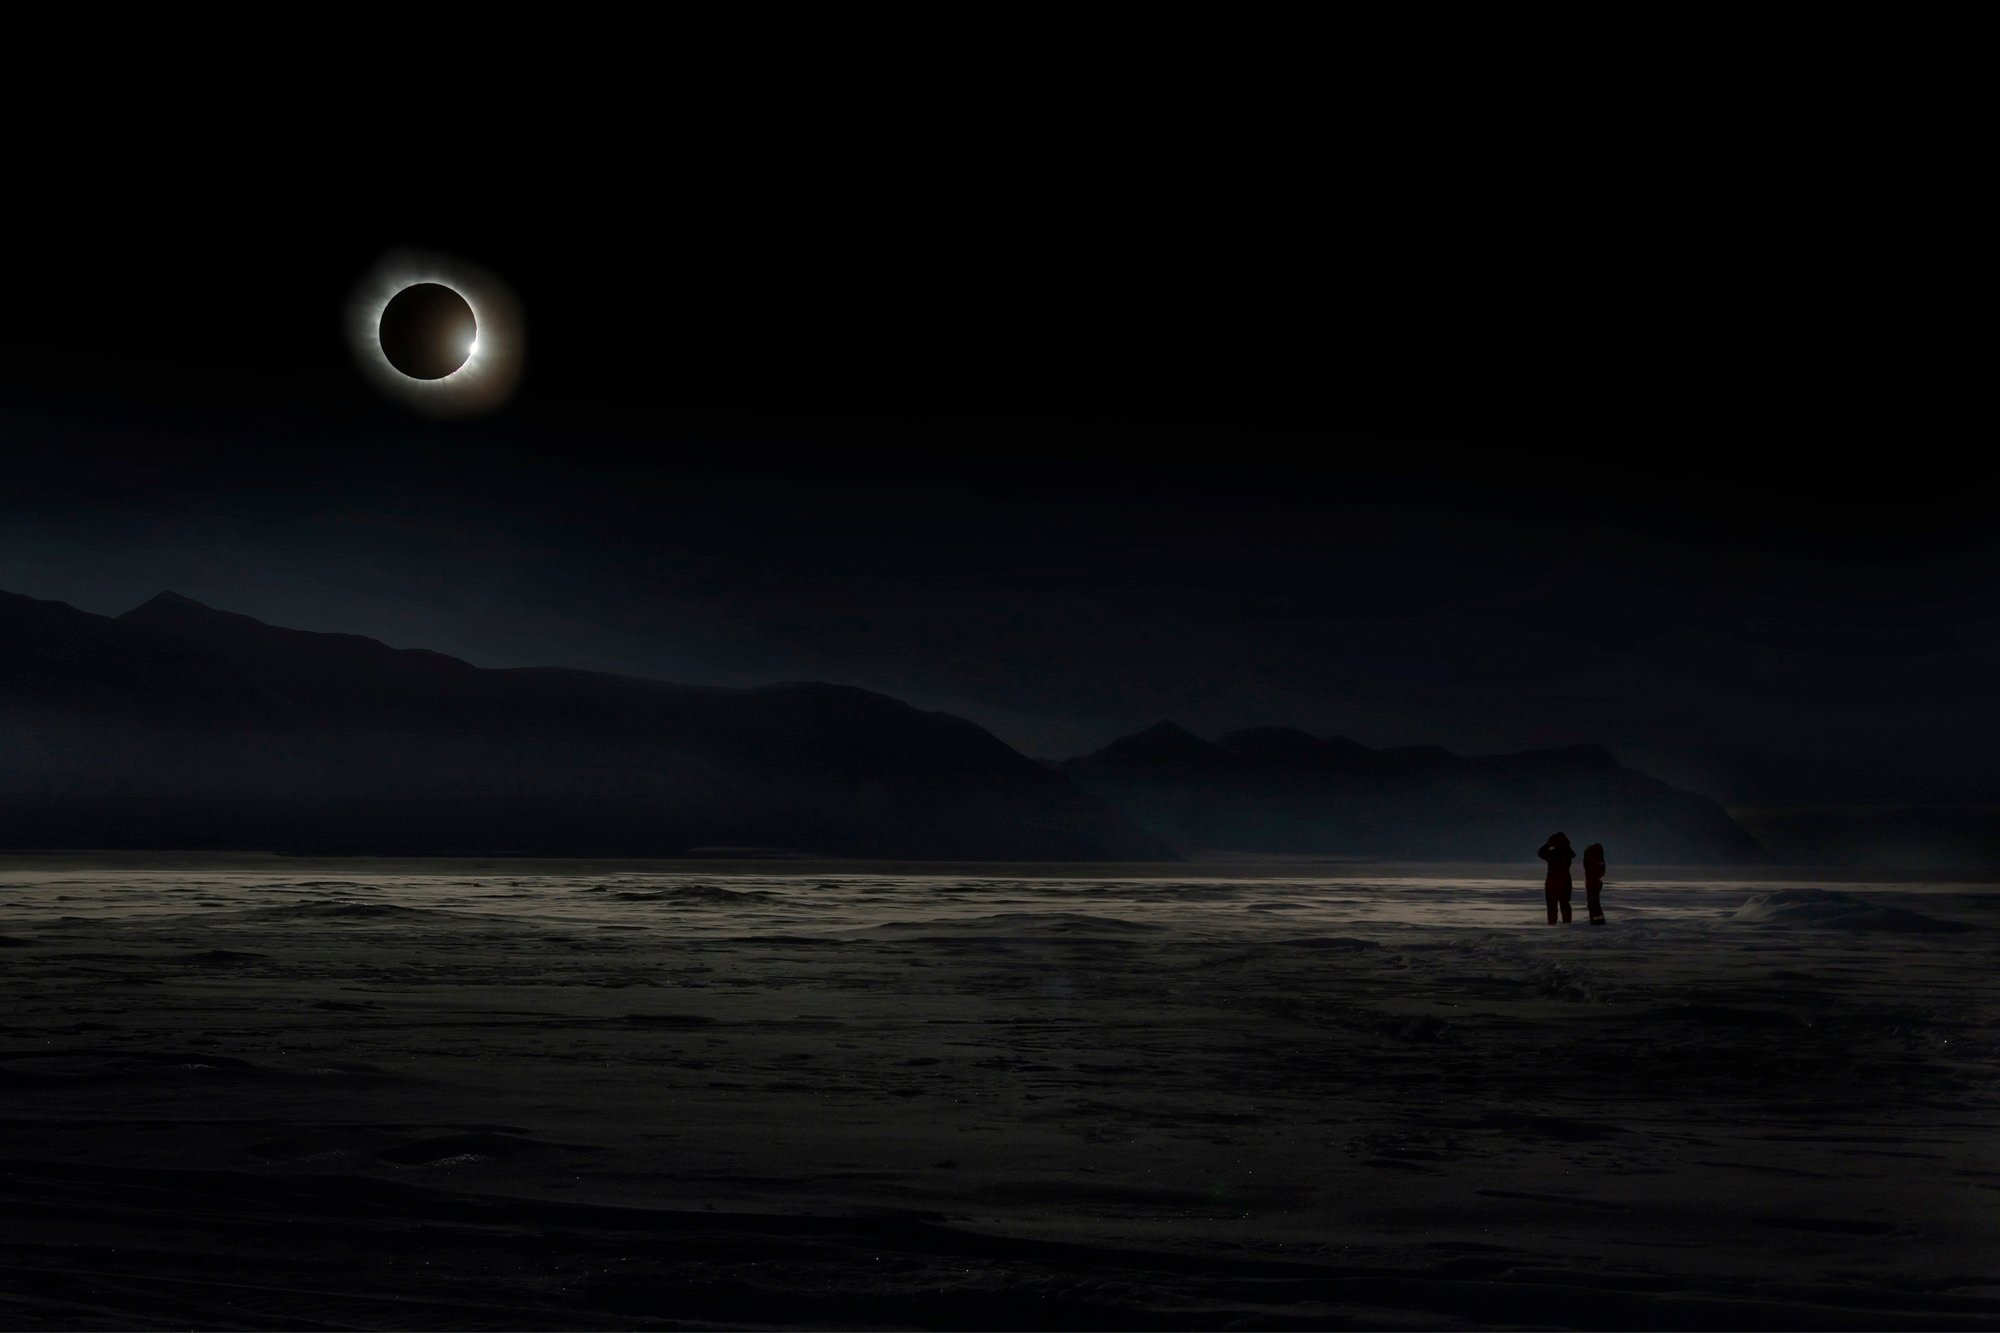 """""""The total solar eclipse in Svalbard on March 20, 2015 was one of the most importa nt and impressive astronomical events."""" Image: Vladimir Alekseev/www.tpoty.com"""